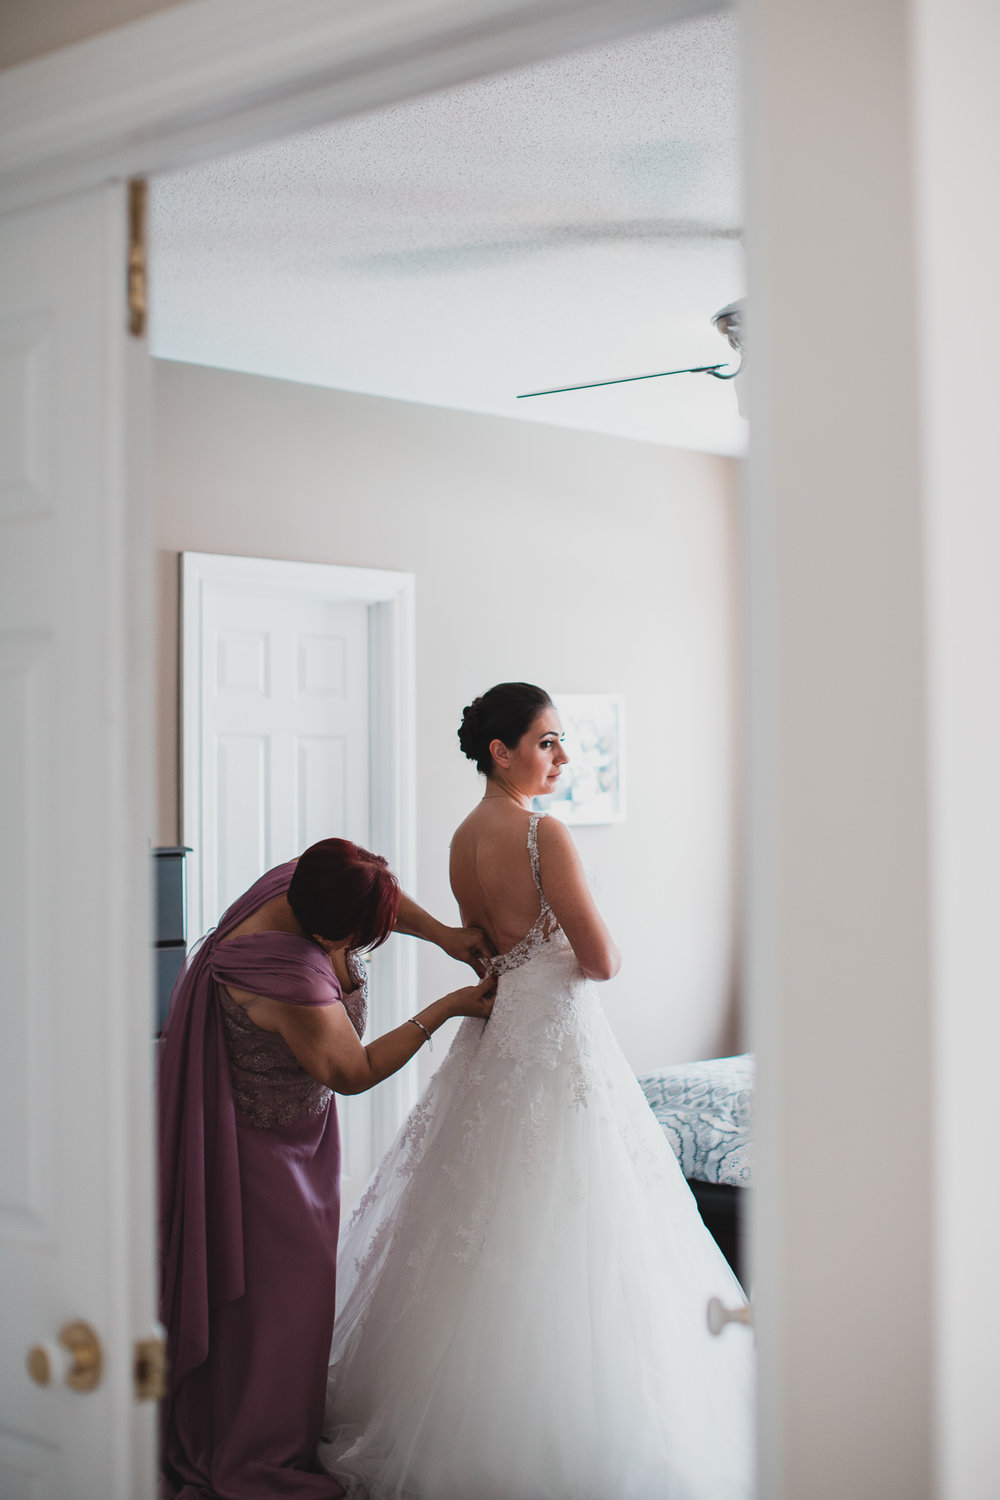 Intimate wedding moments captured